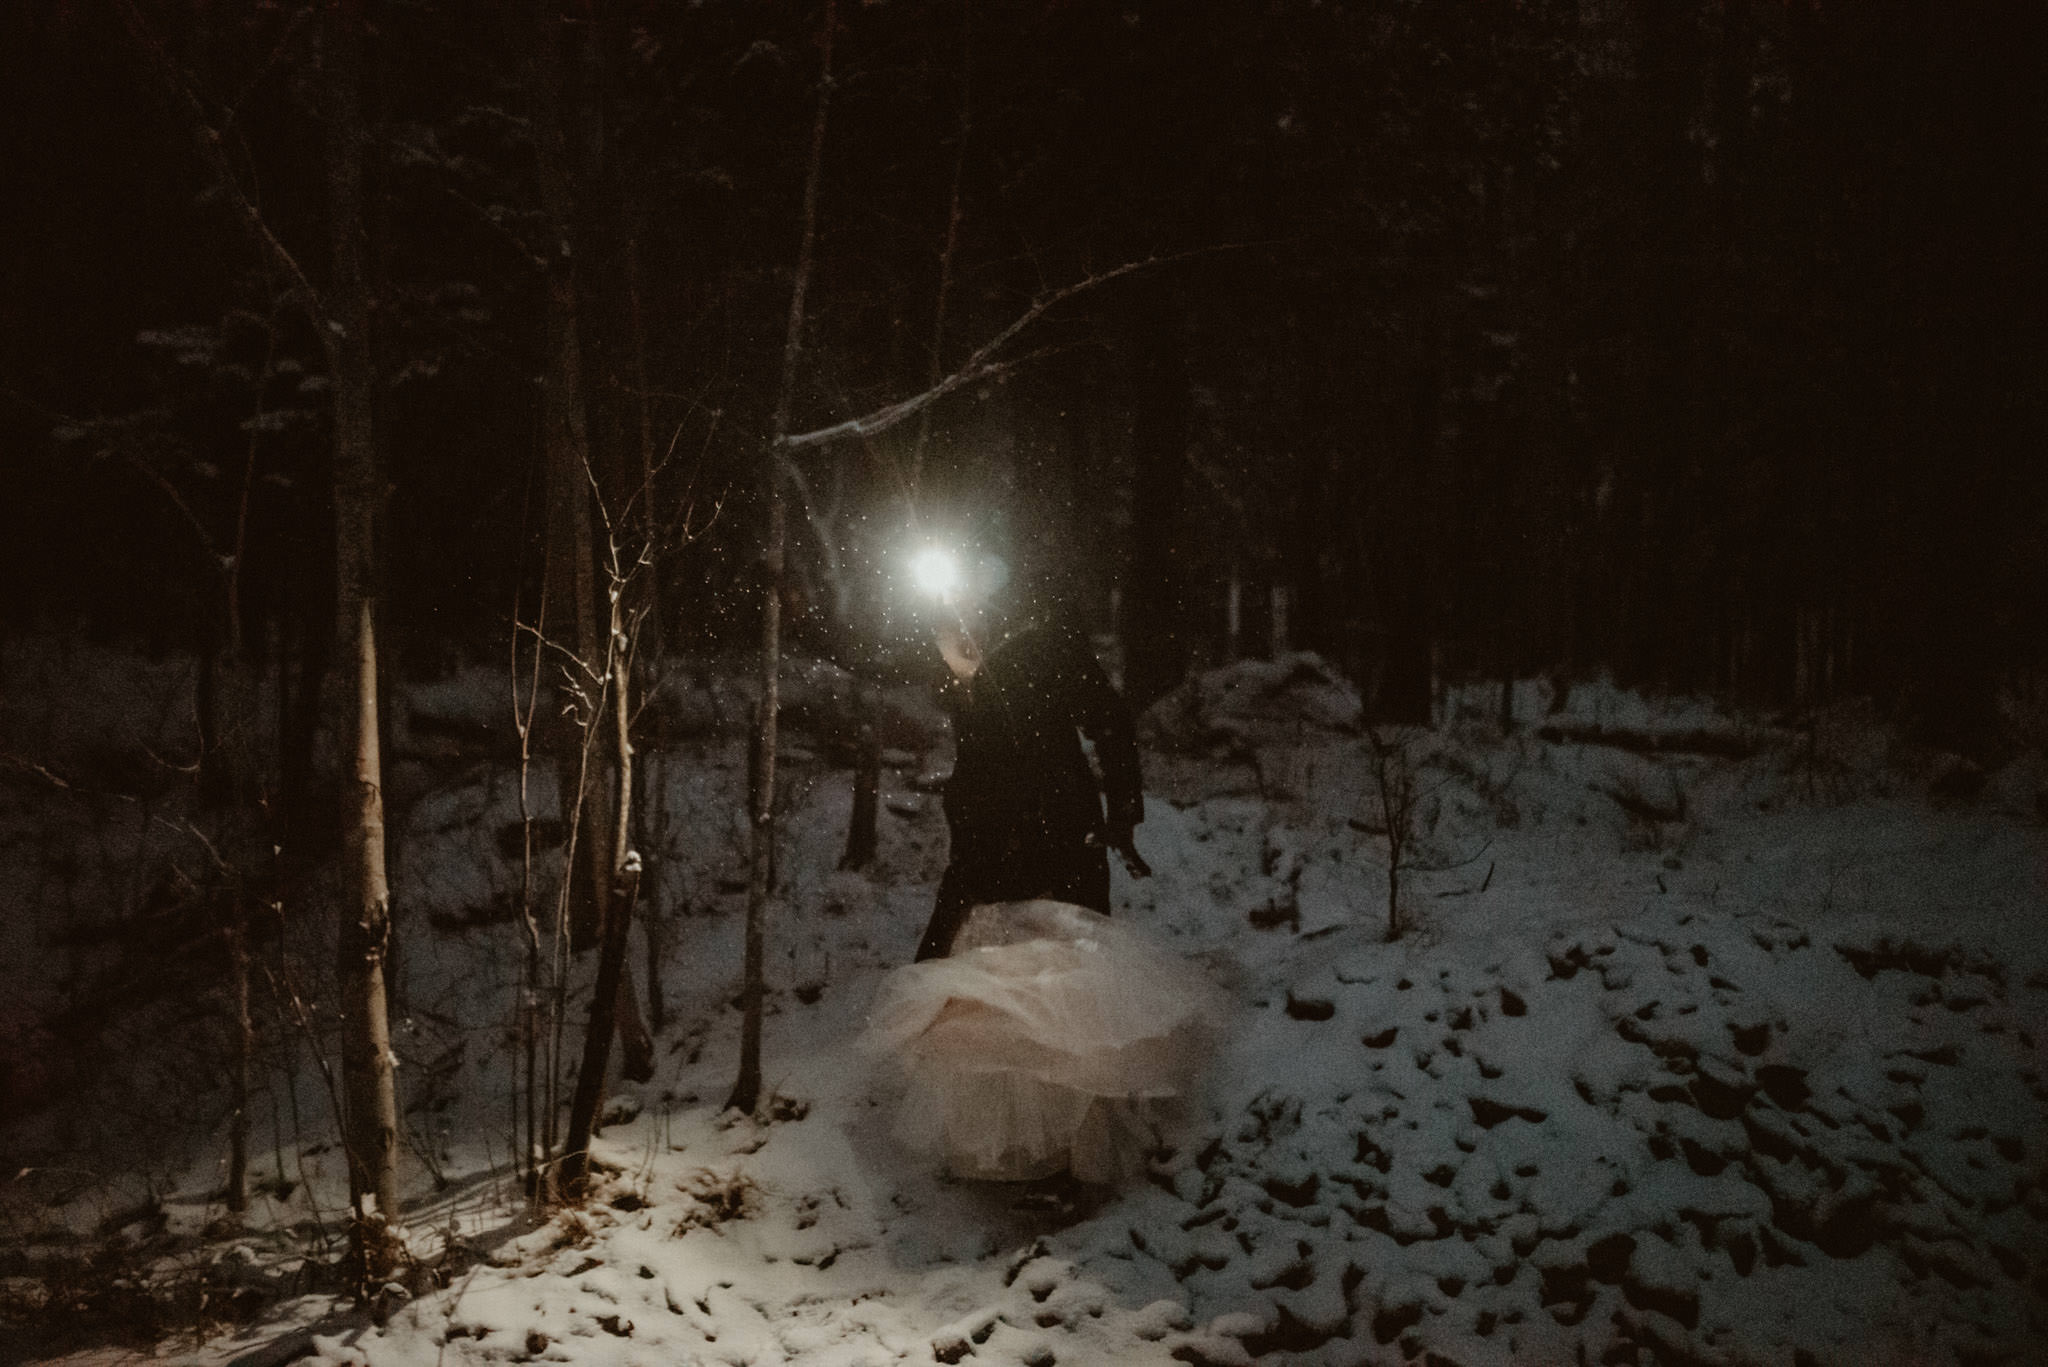 Hiking down Sugarloaf at night with the bride and groom